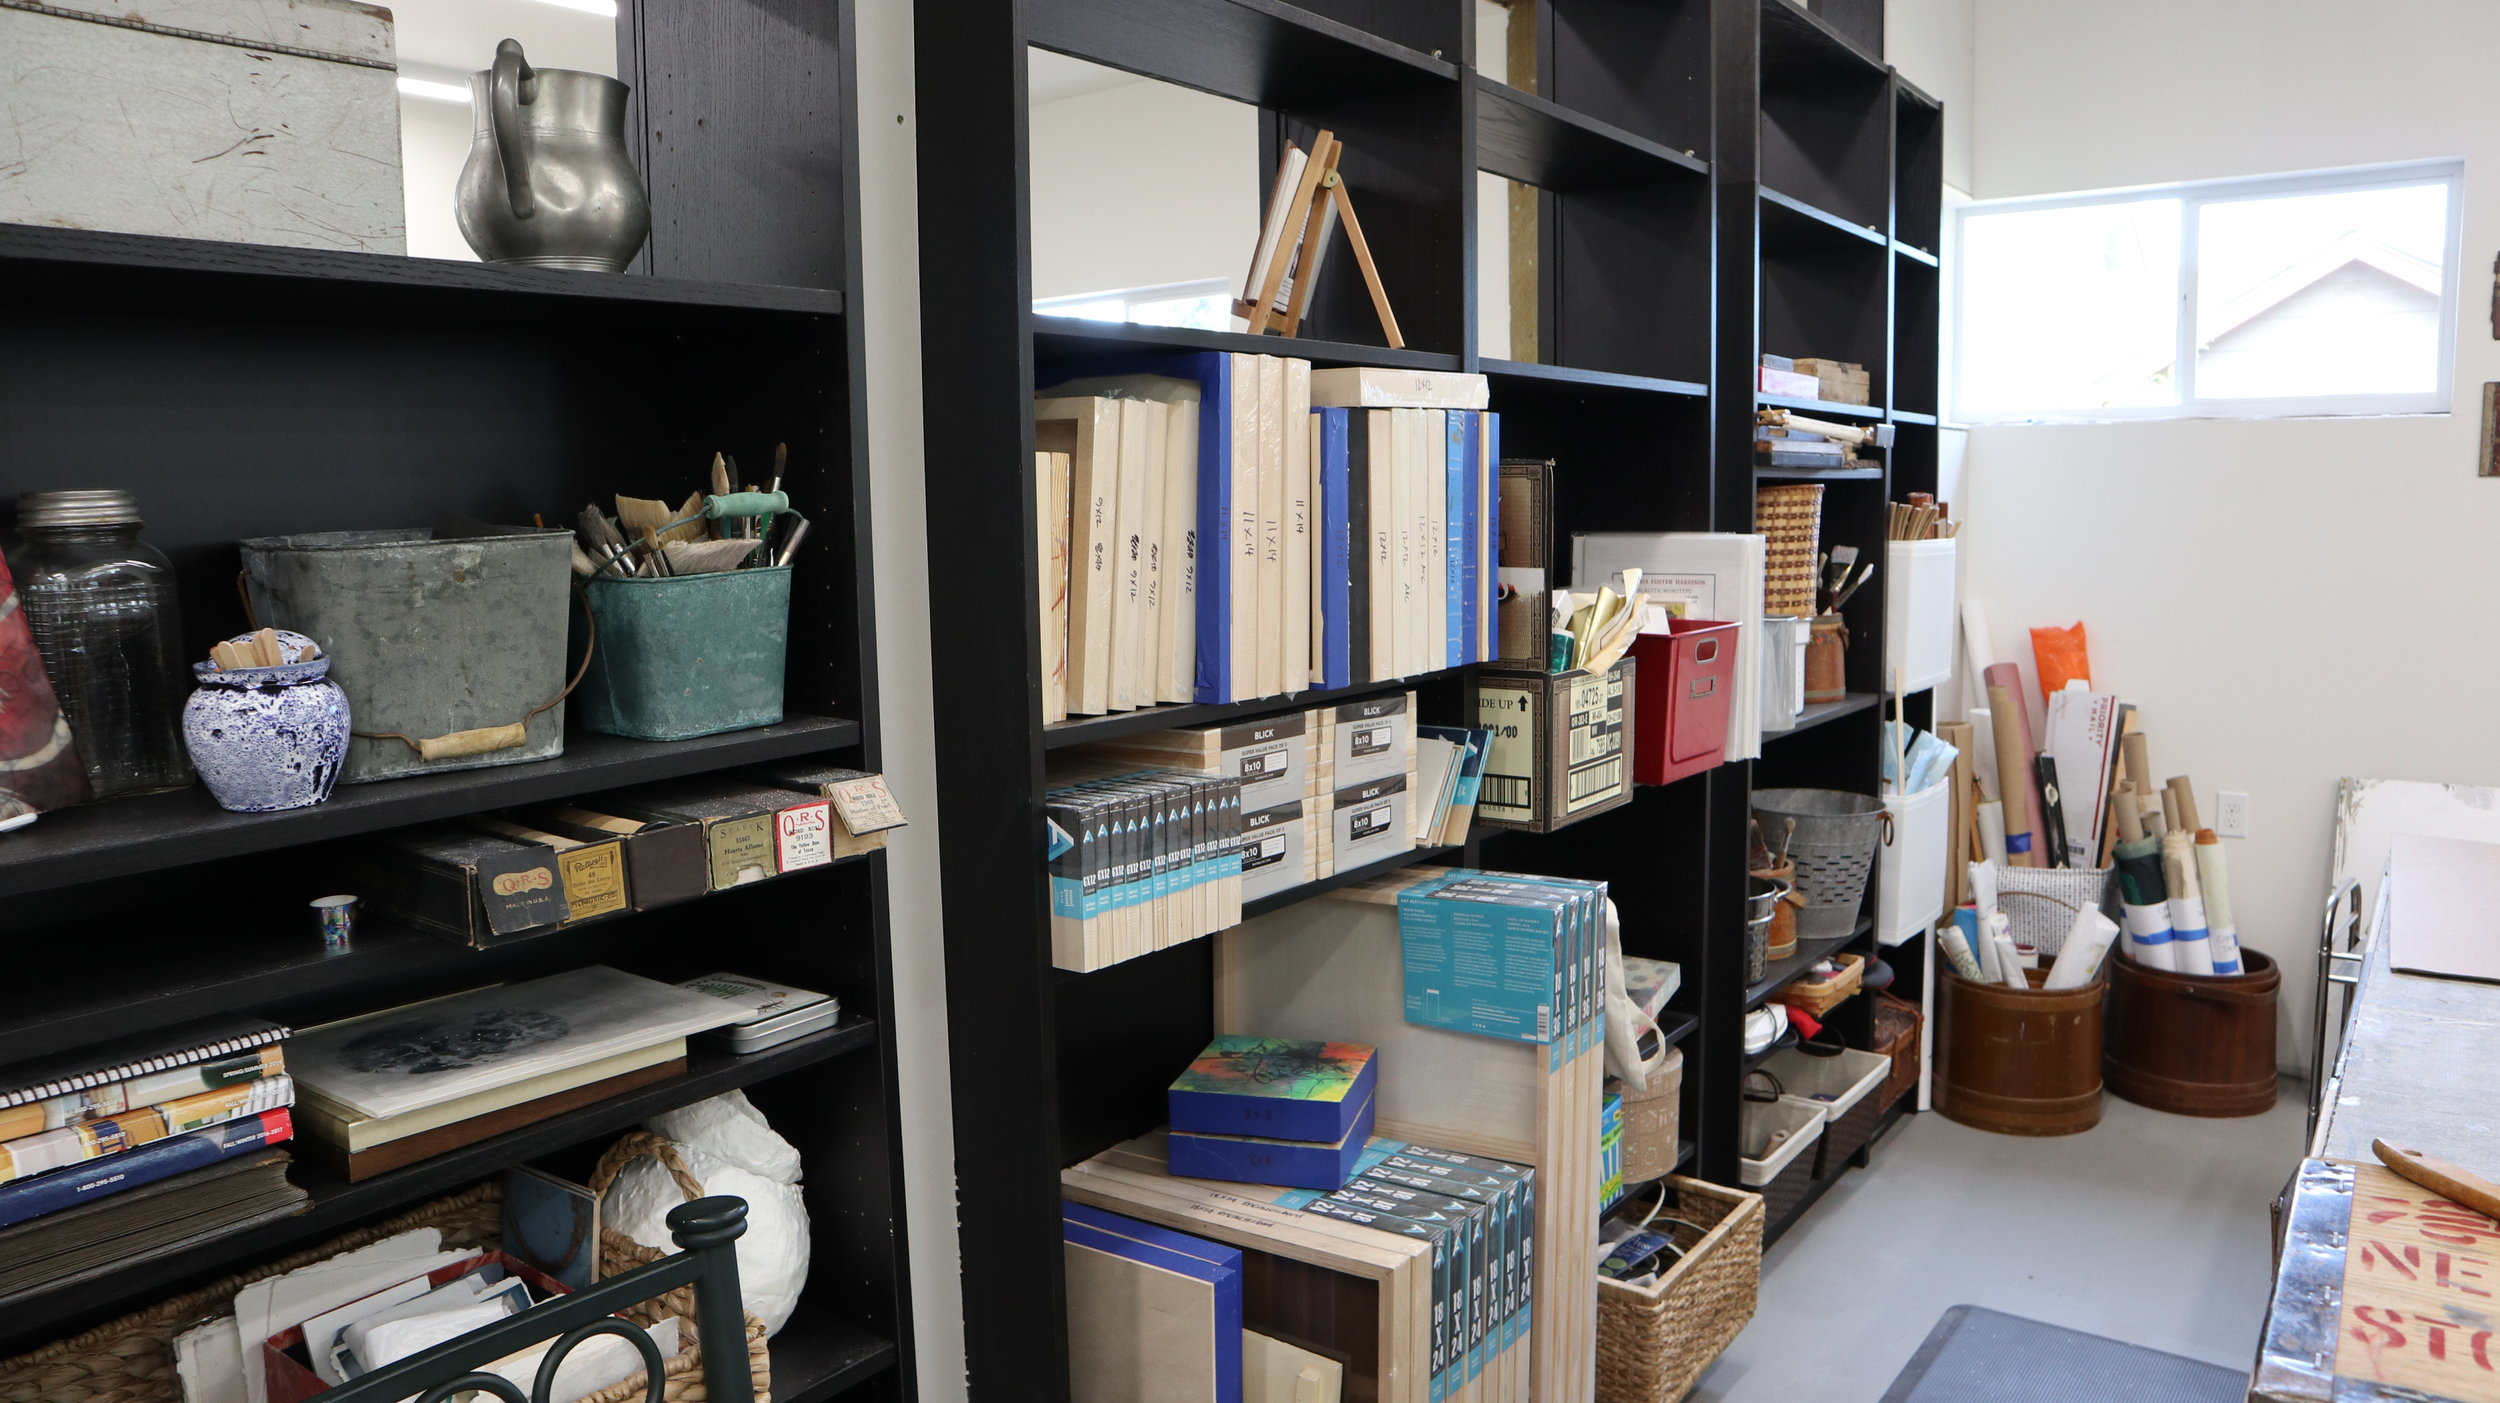 On the back side of the wall, the bookcases allow tons of room for supplies!